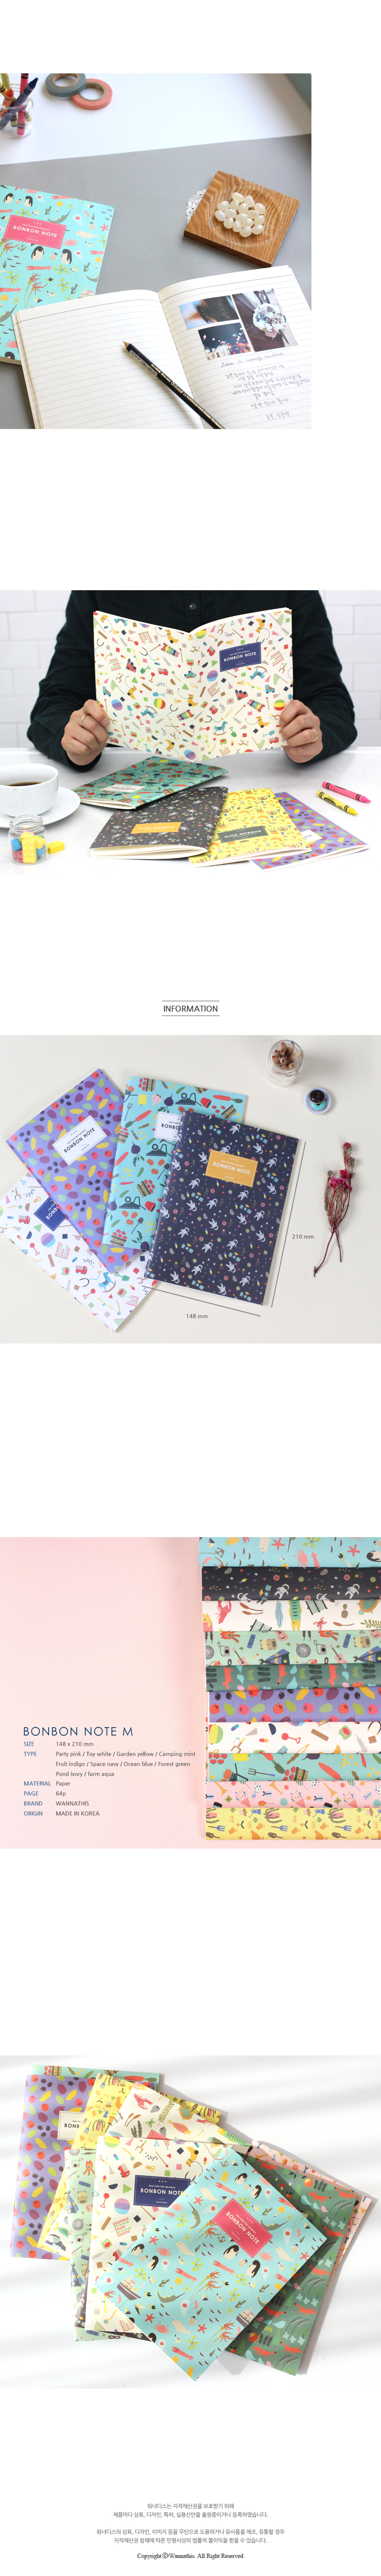 the magic notebook stationery shop uk [the magic notebook, stationery shop, the magic notebook uk]